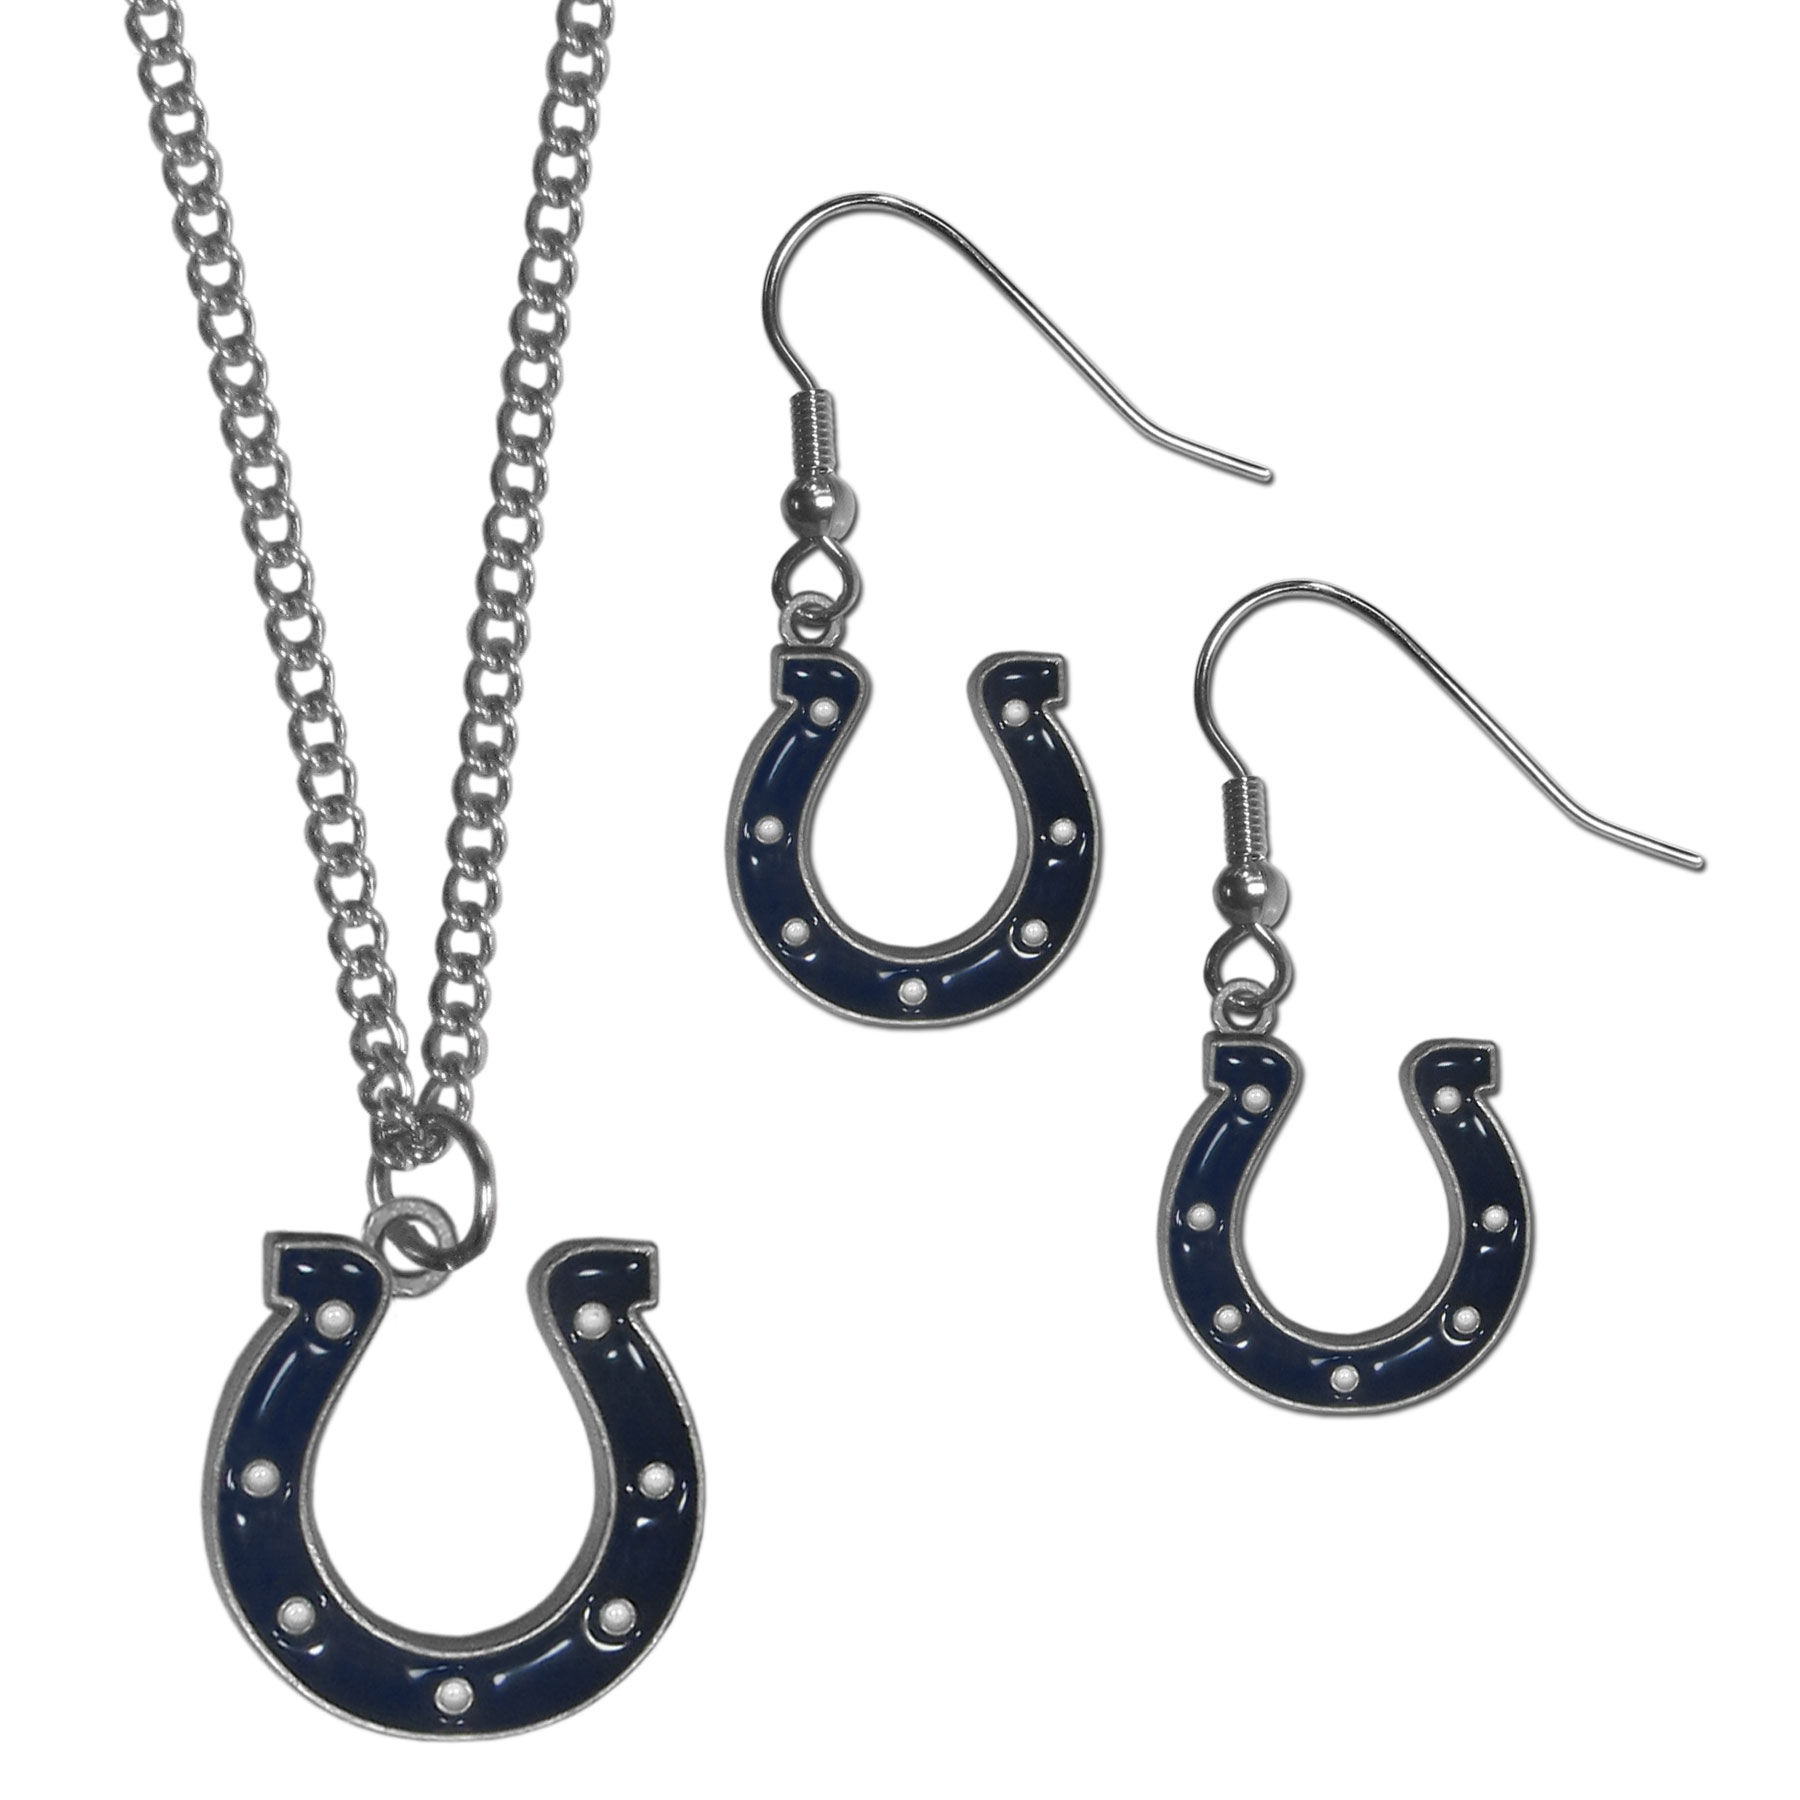 Indianapolis Colts Dangle Earrings and Chain Necklace Set - This classic jewelry set contains are most popular Indianapolis Colts dangle earrings and 22 inch chain necklace. The trendy, dangle earrings are lightweight and feature a fully cast metal team charm with enameled team colors. The matching necklace completes this fashion forward combo and is a spirited set that is perfect for game day but nice enough for everyday.